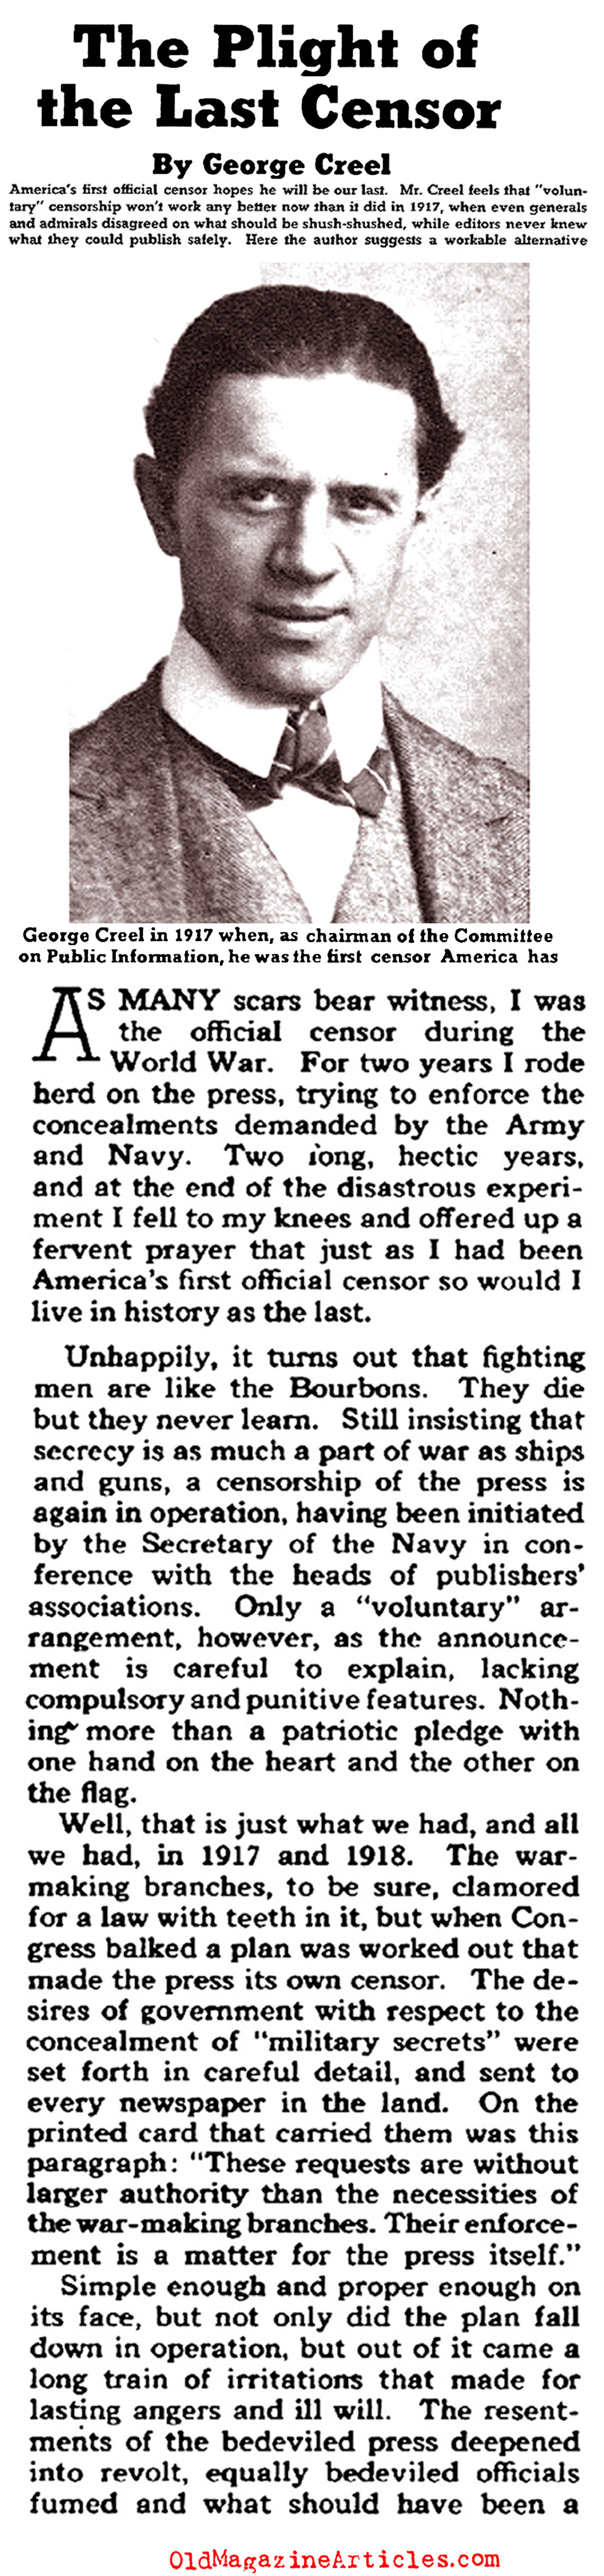 The Failures of W.W. I American Press Censorship (Collier's Magazine, 1941)